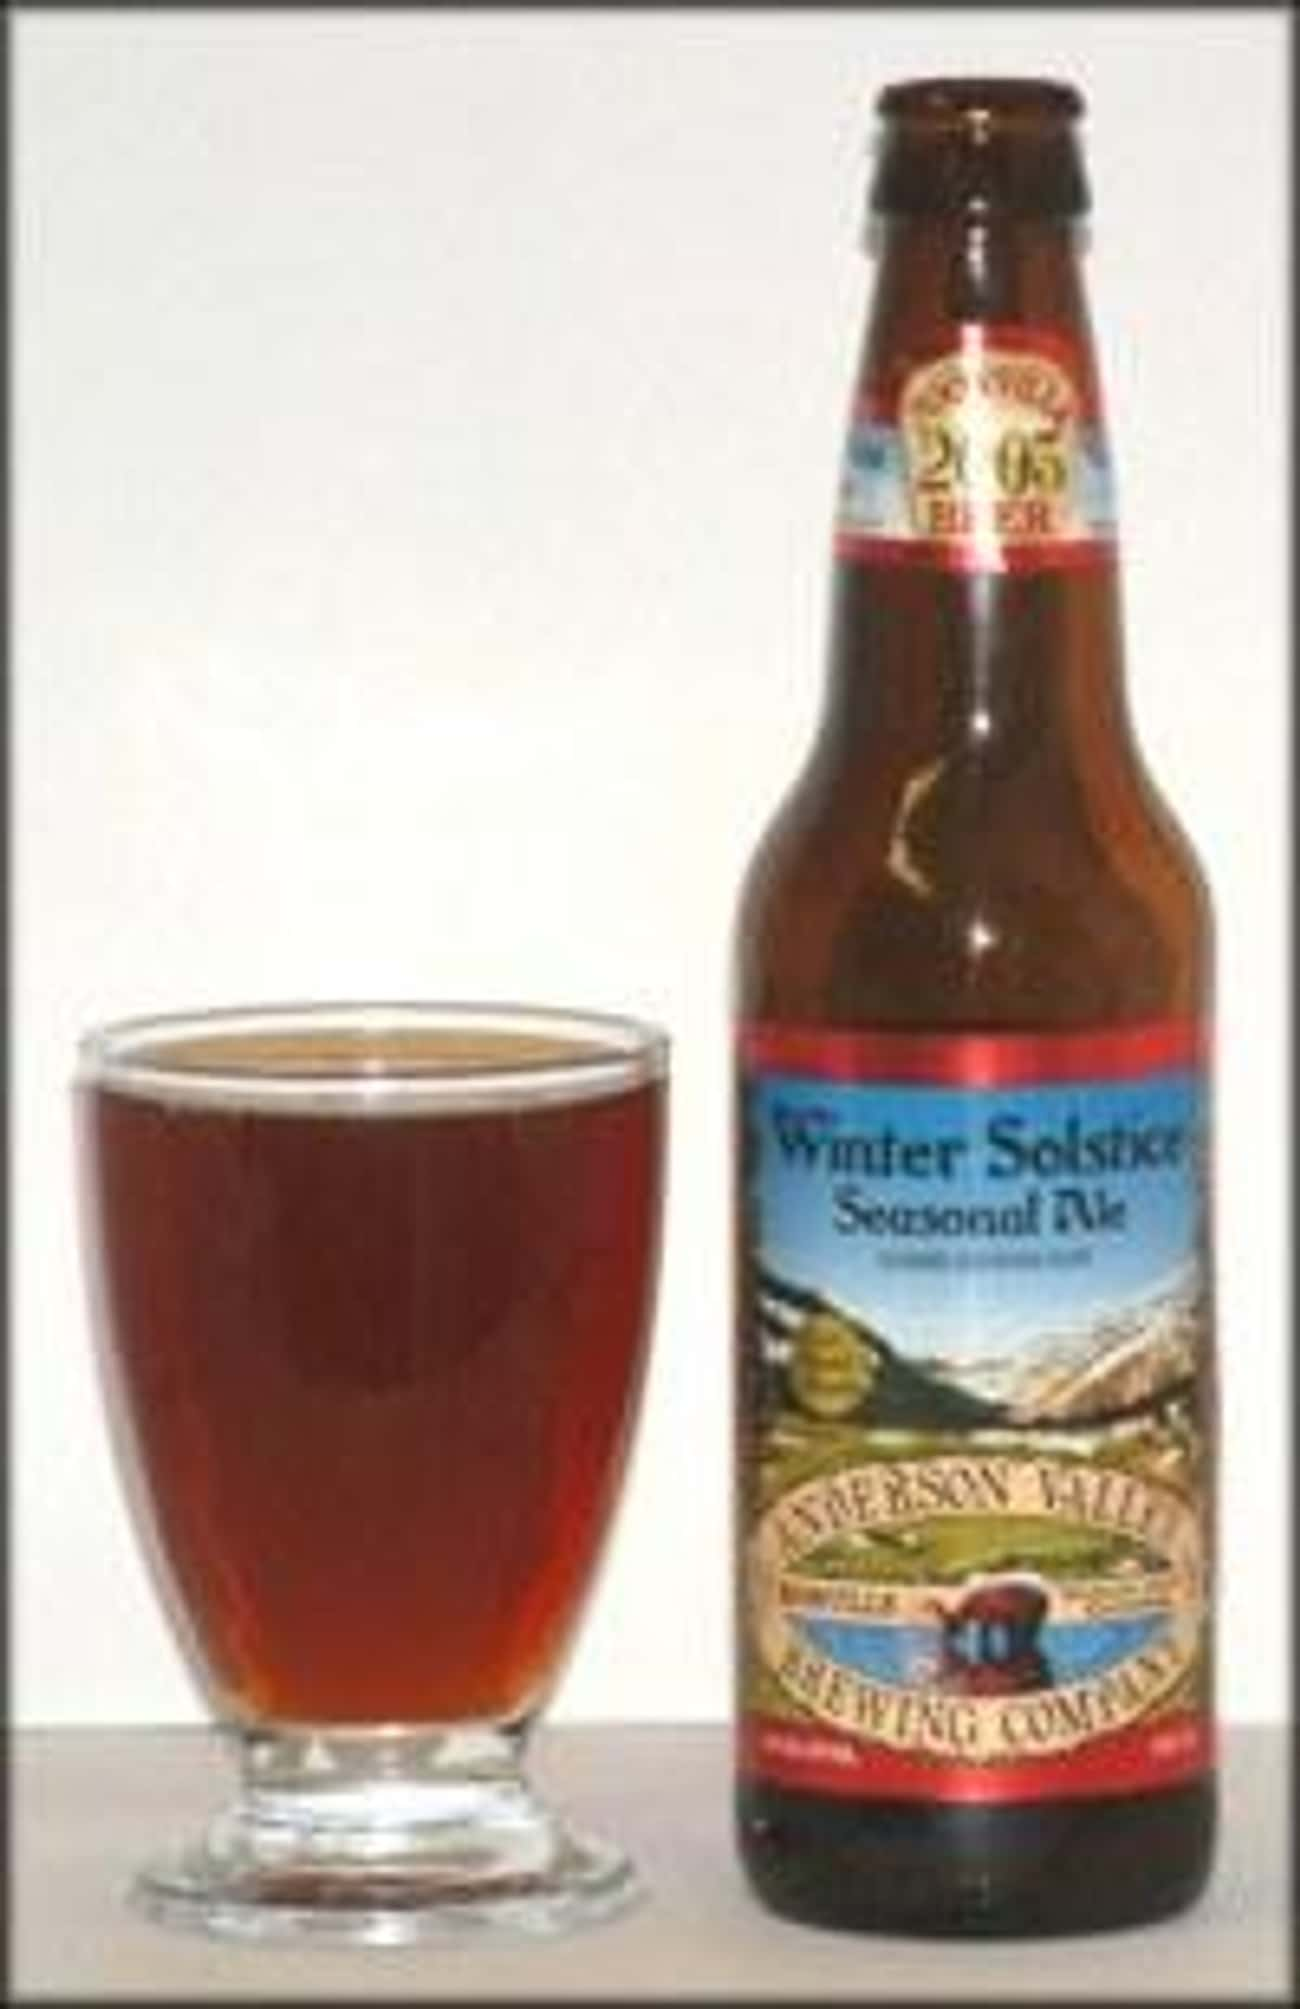 Anderson Valley Winter Solstic is listed (or ranked) 1 on the list Beers with 6.9 Percent Alcohol Content